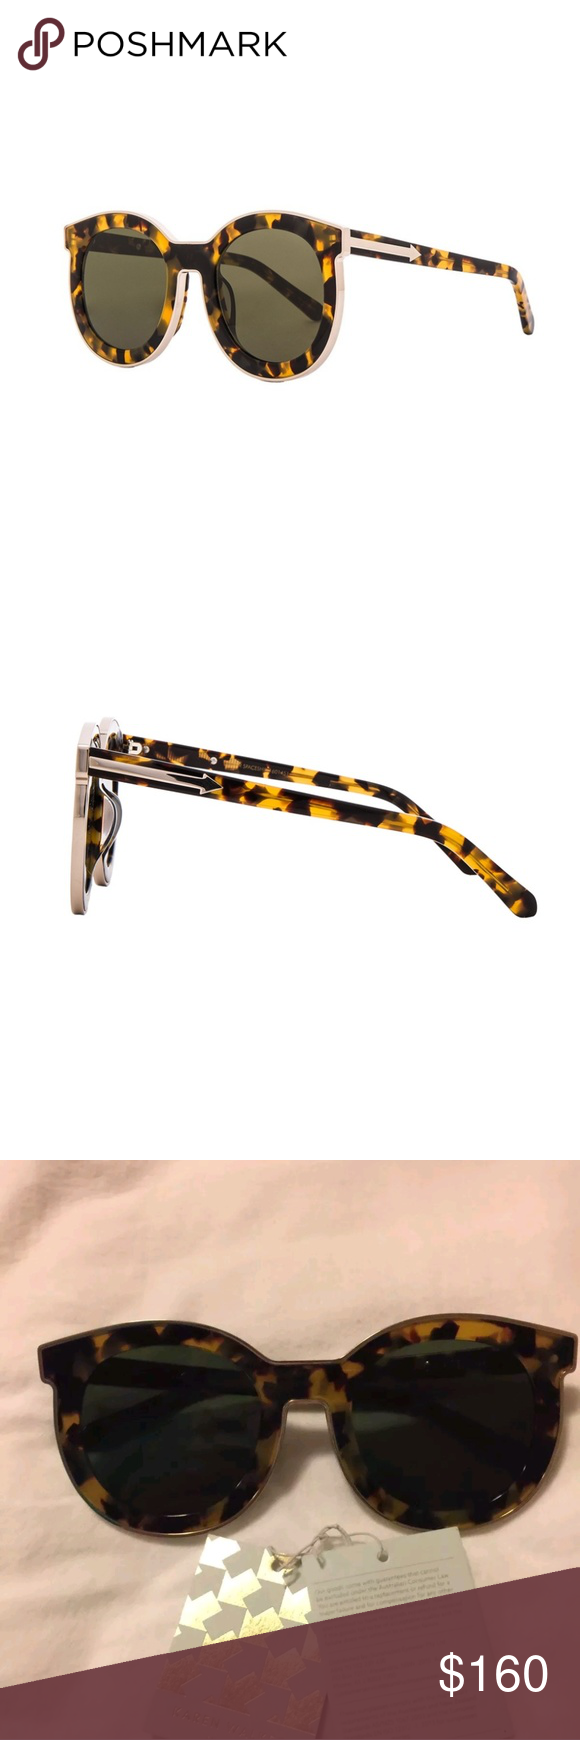 dae165964e8 Gold · Karen walker super spaceship sunglasses ...